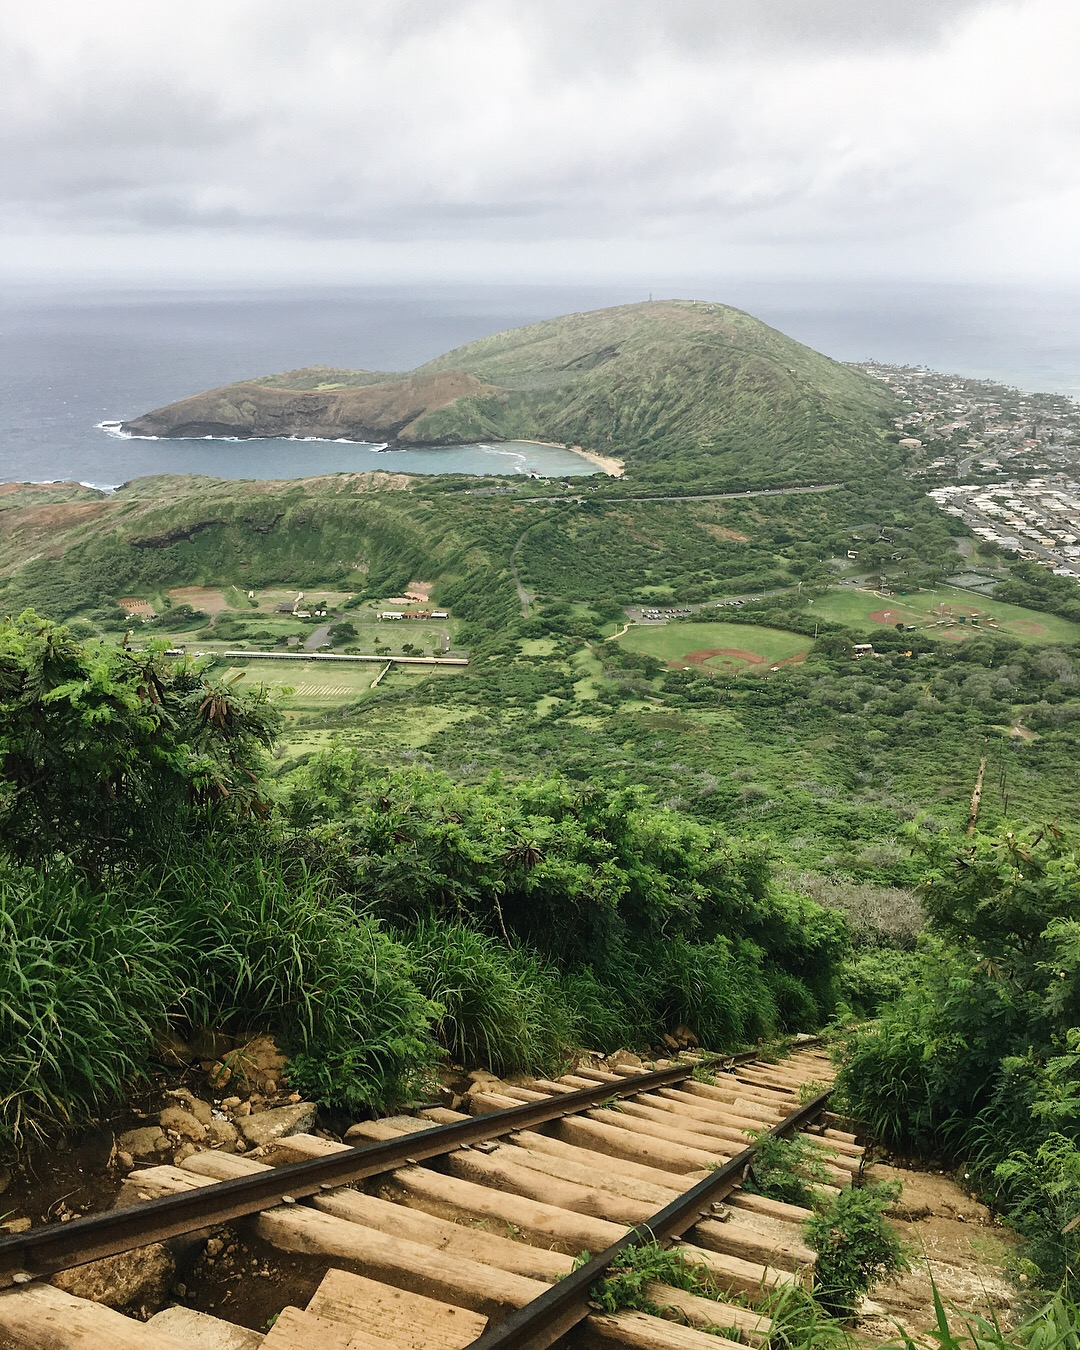 Oahu, HI - Fall in love with the magic of the islands.